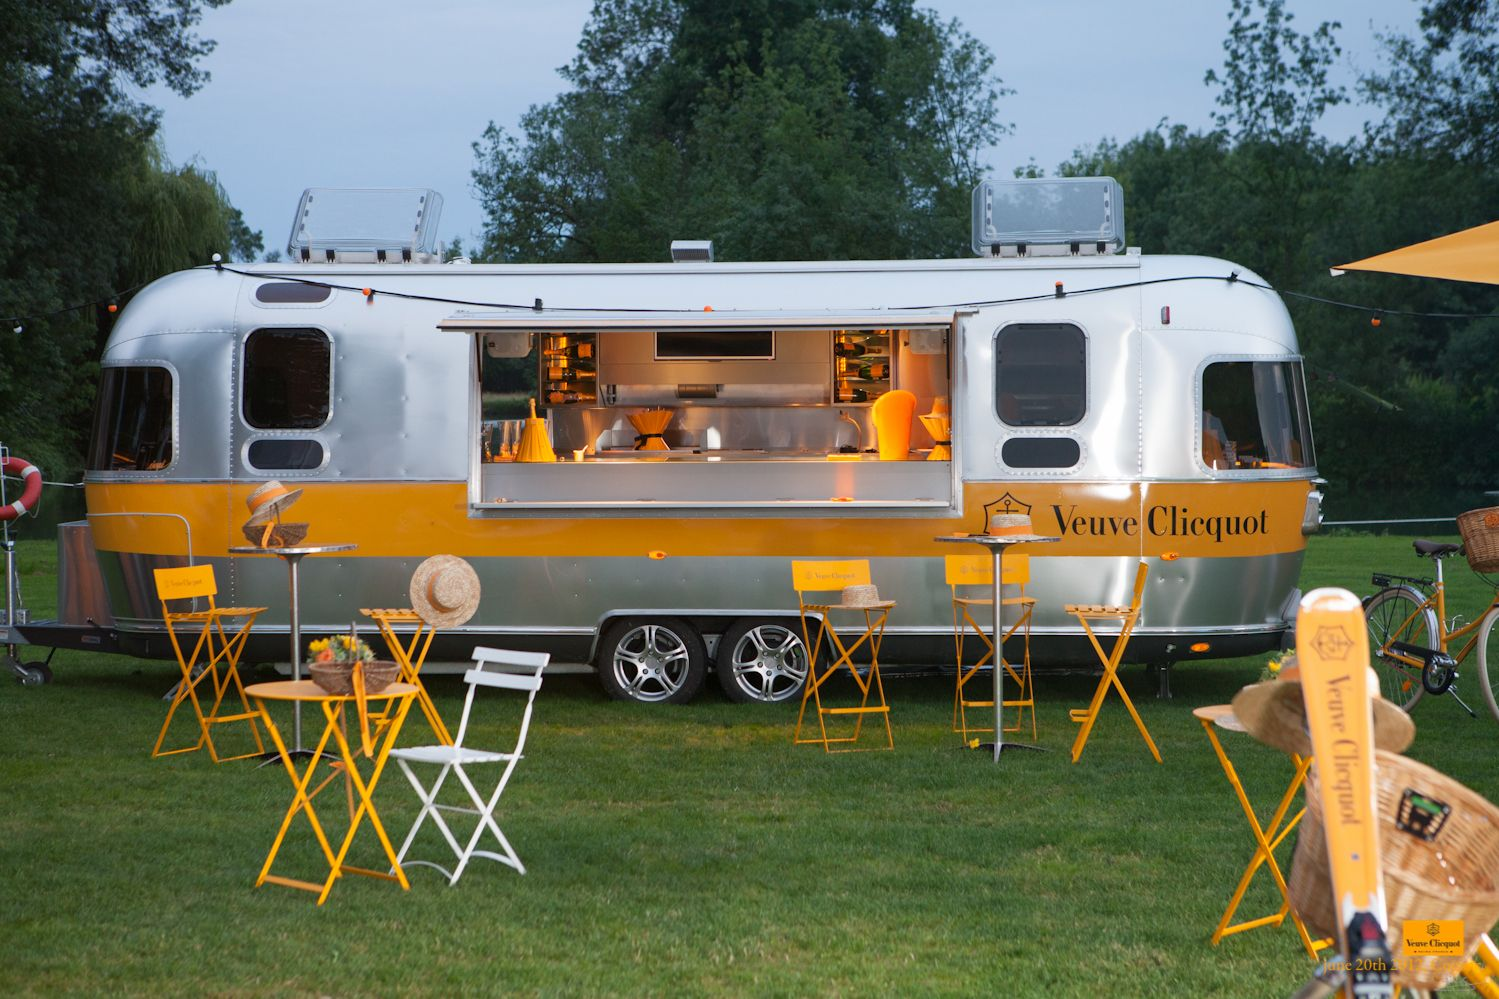 Airstream Caravan Vintage two of the best things in life #veuveclicquot #airstream